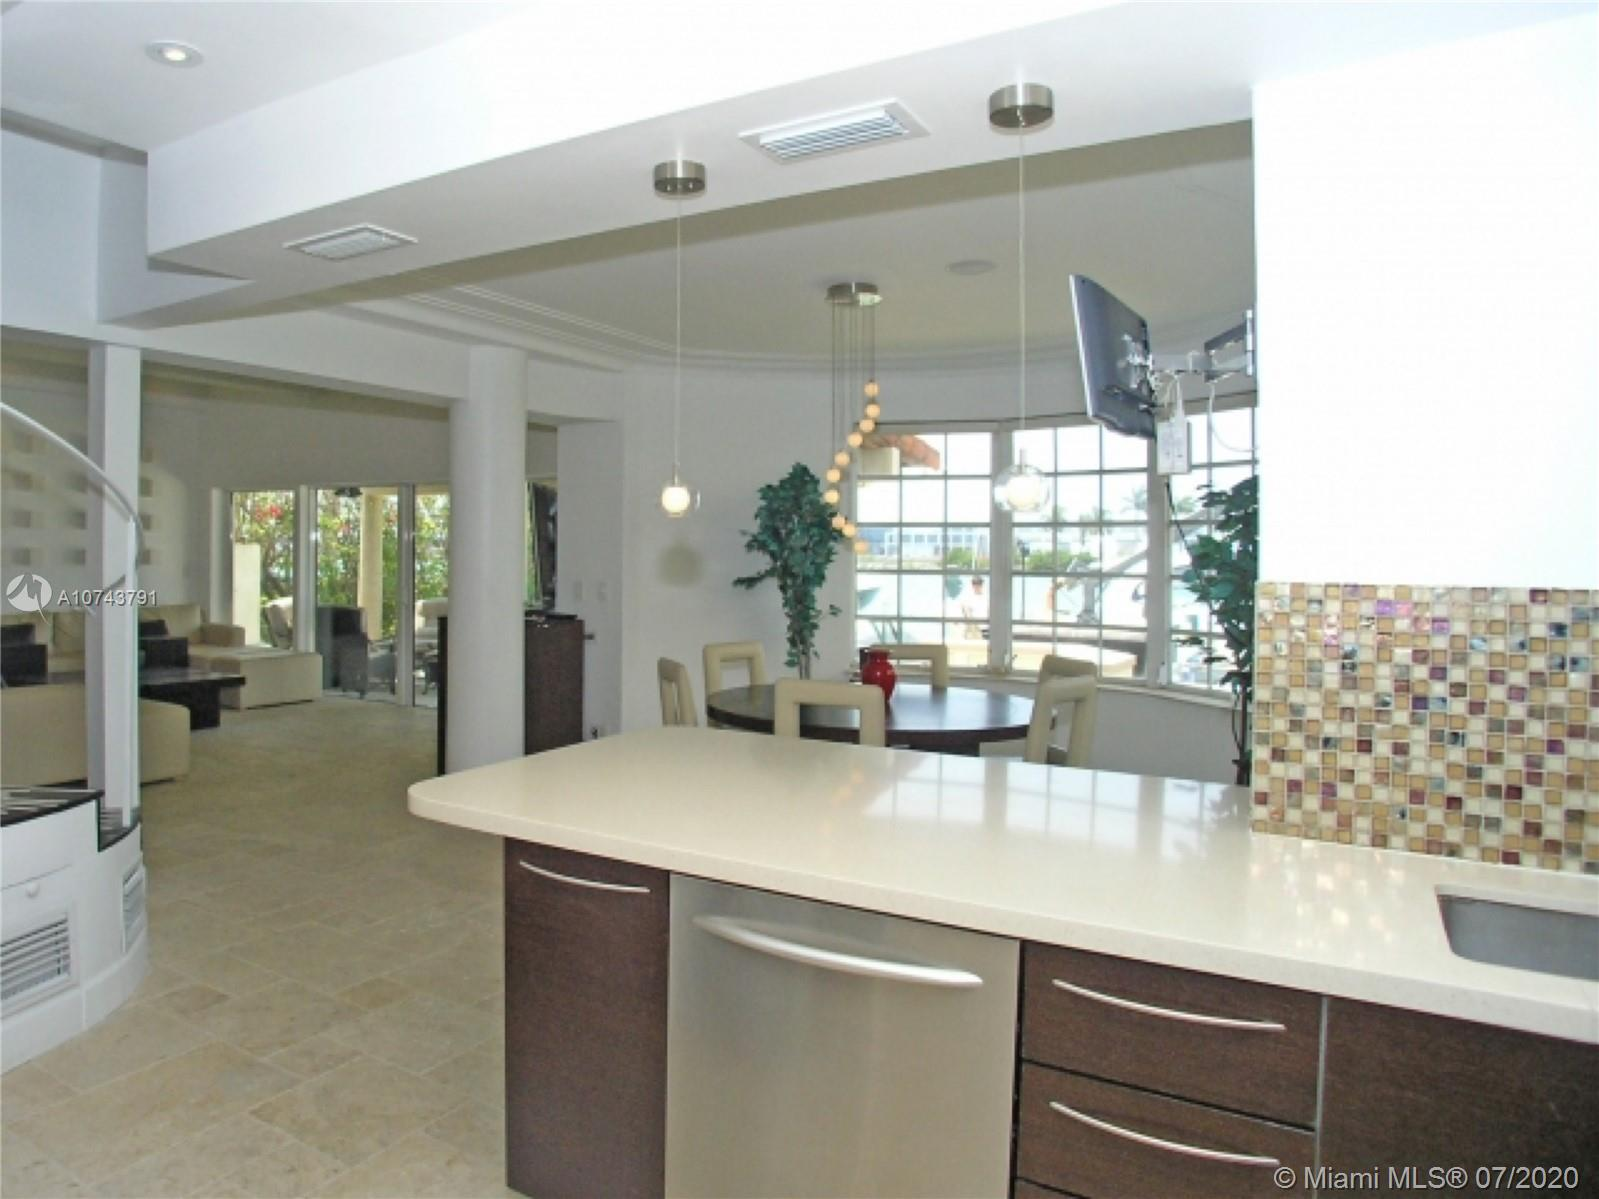 224 S coconut ln- miami-beach-fl-33139-a10743791-Pic19